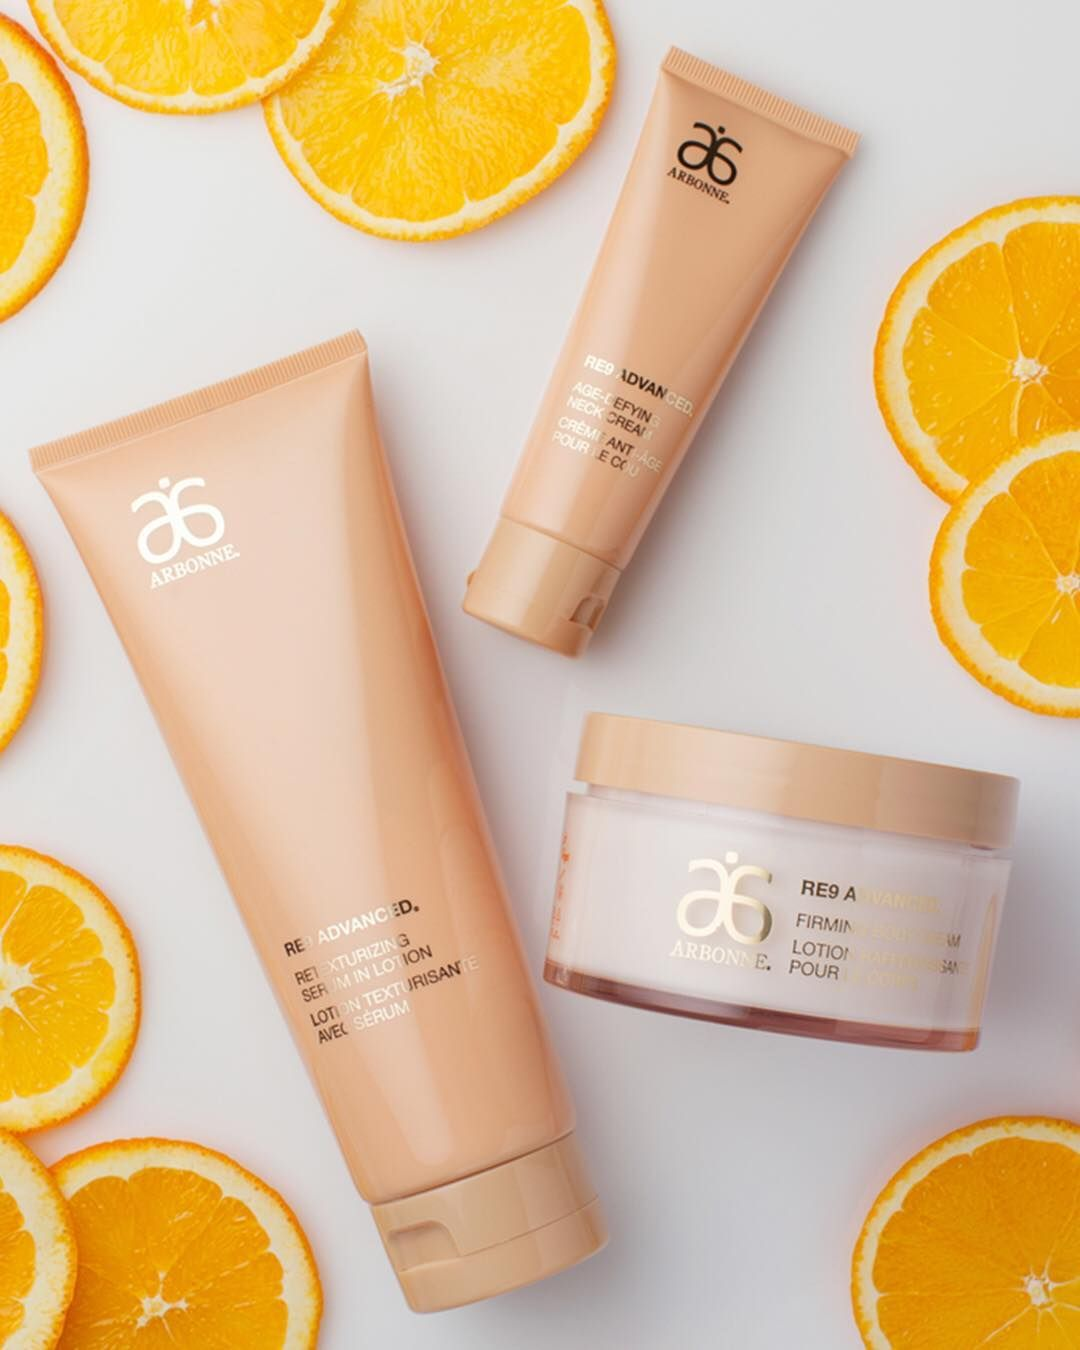 8c16029ae37 The new RE9 Advanced® Body Collection features the gold standard ingredient,  vitamin C, so you can get your glow on from head to toe!